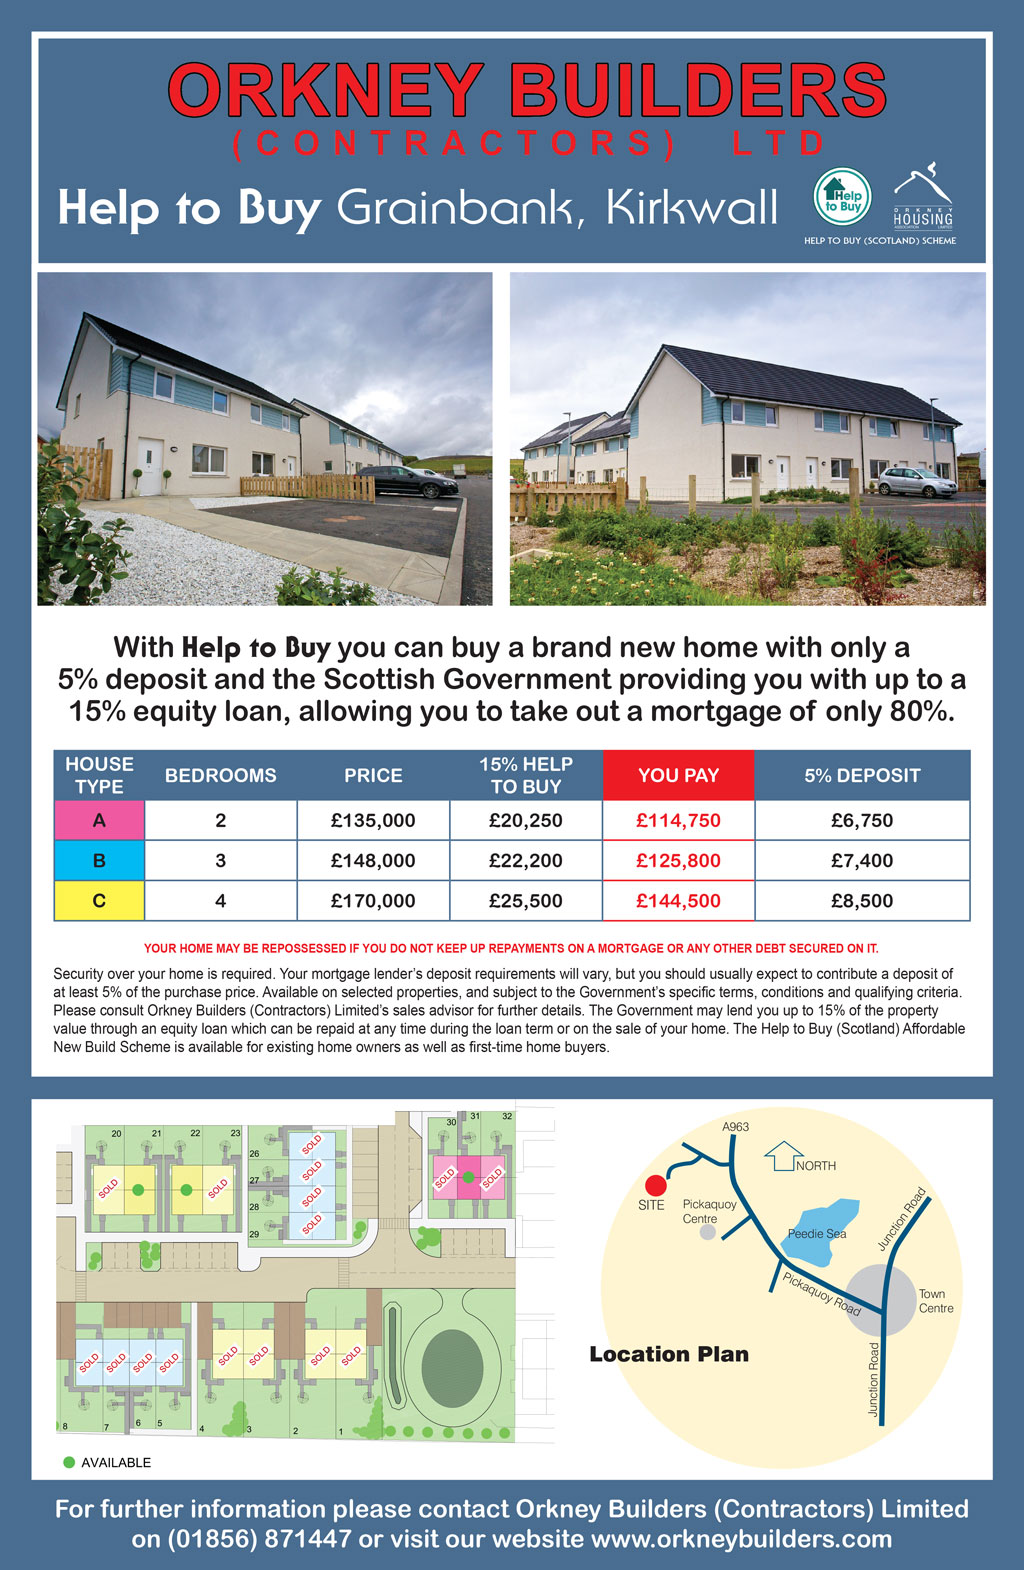 Orkney Builders - Help to buy Grainbank, Kirkwall